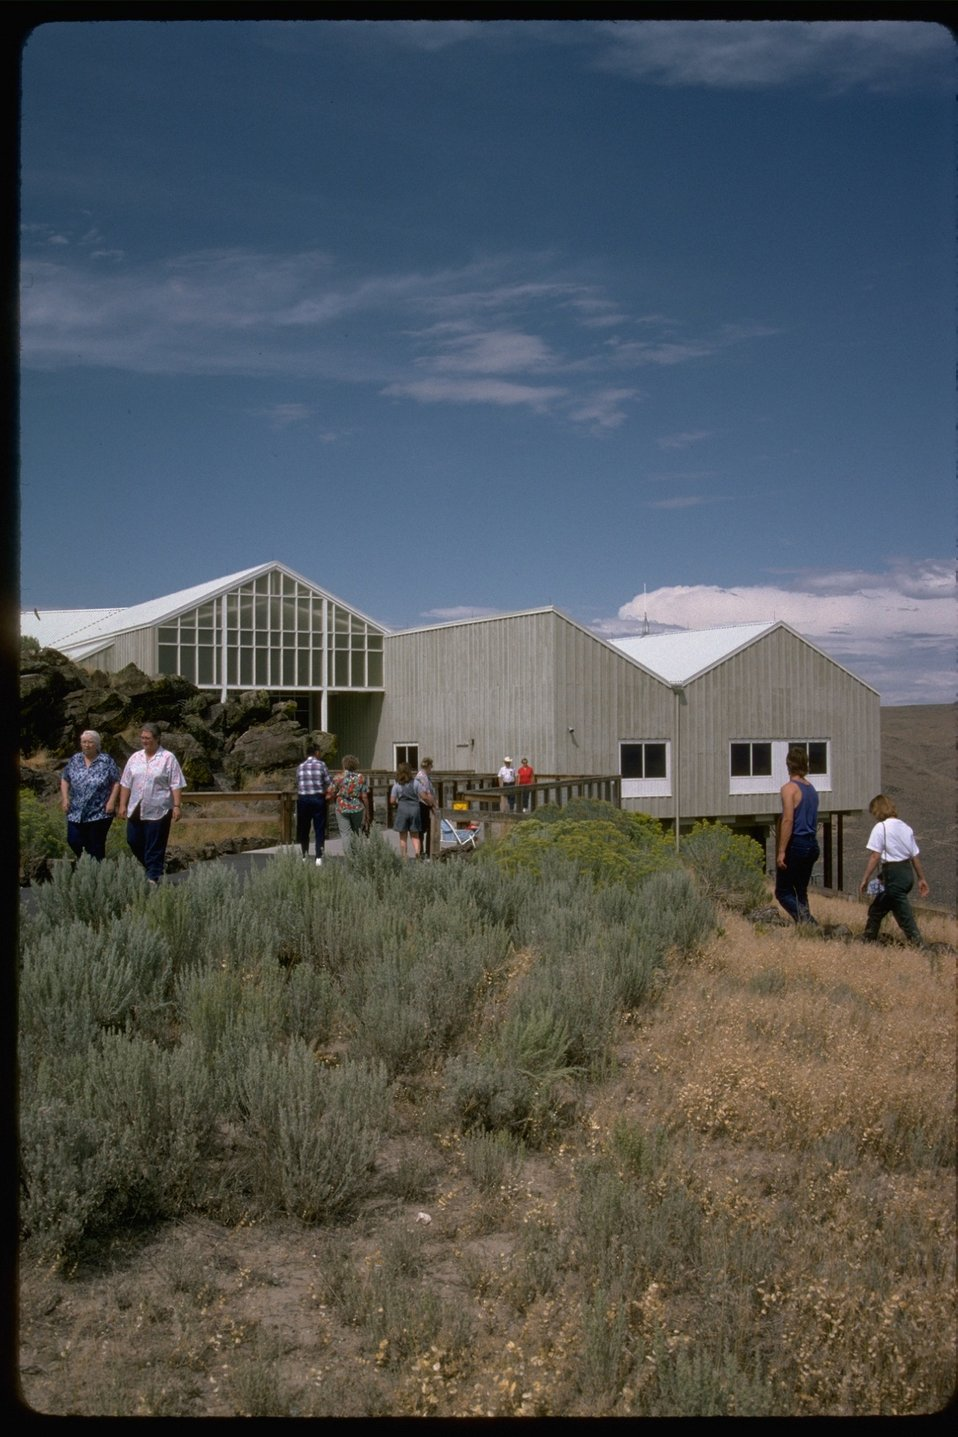 Exterior view of the National Historic Oregon Trail Interpretive Center.